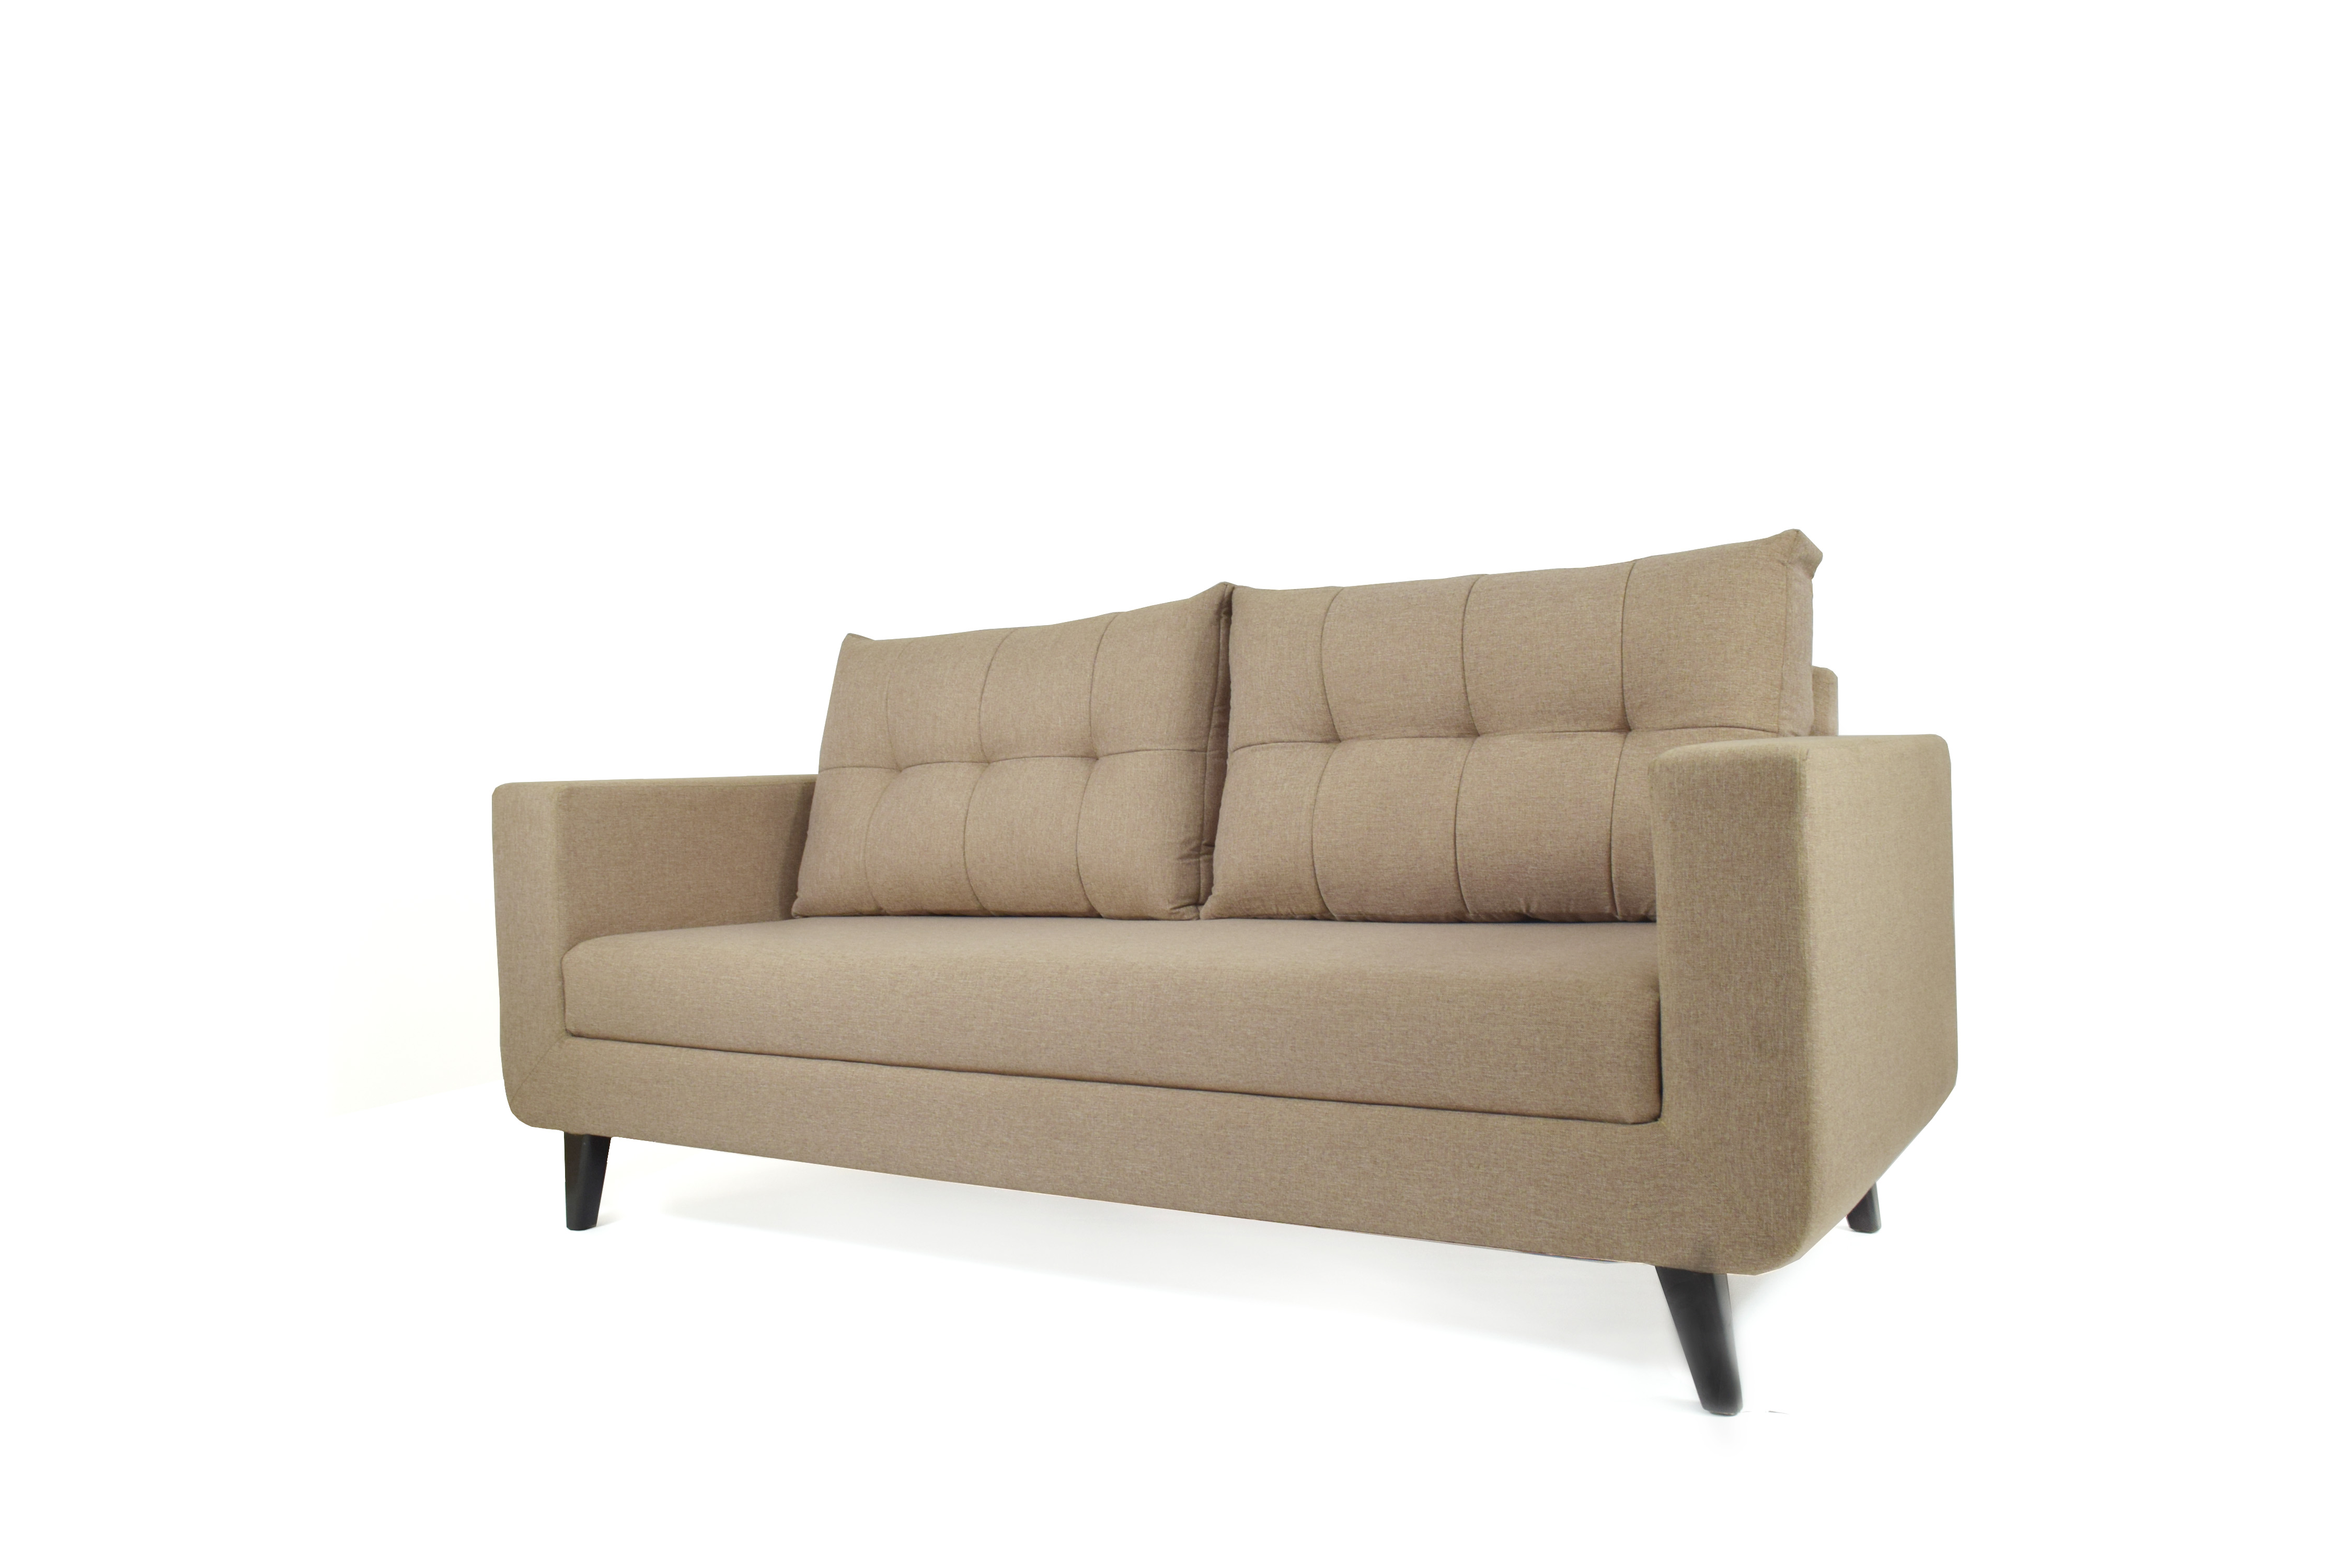 Eitelkeit Retrosofa Referenz Von Retro Sofa